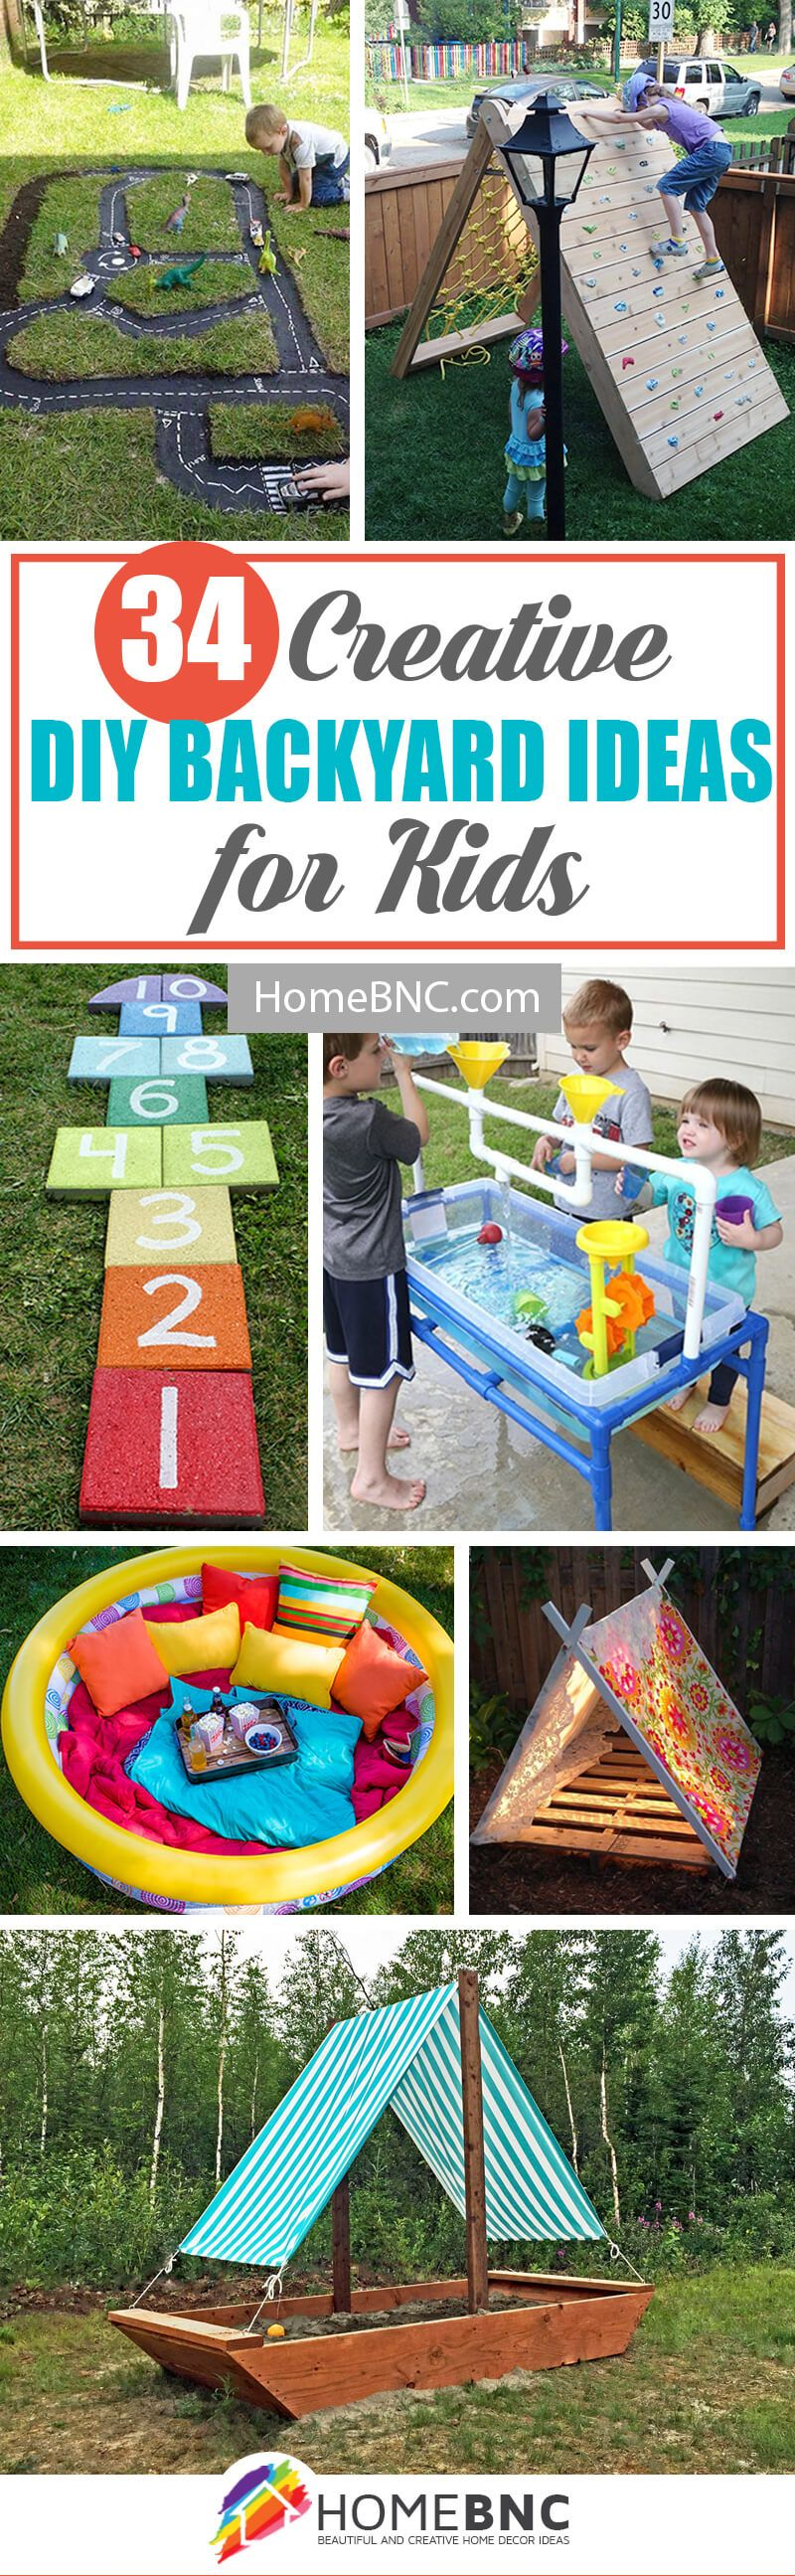 34 Fantastic DIY Backyard Ideas for Kids that are Easy to Make ...